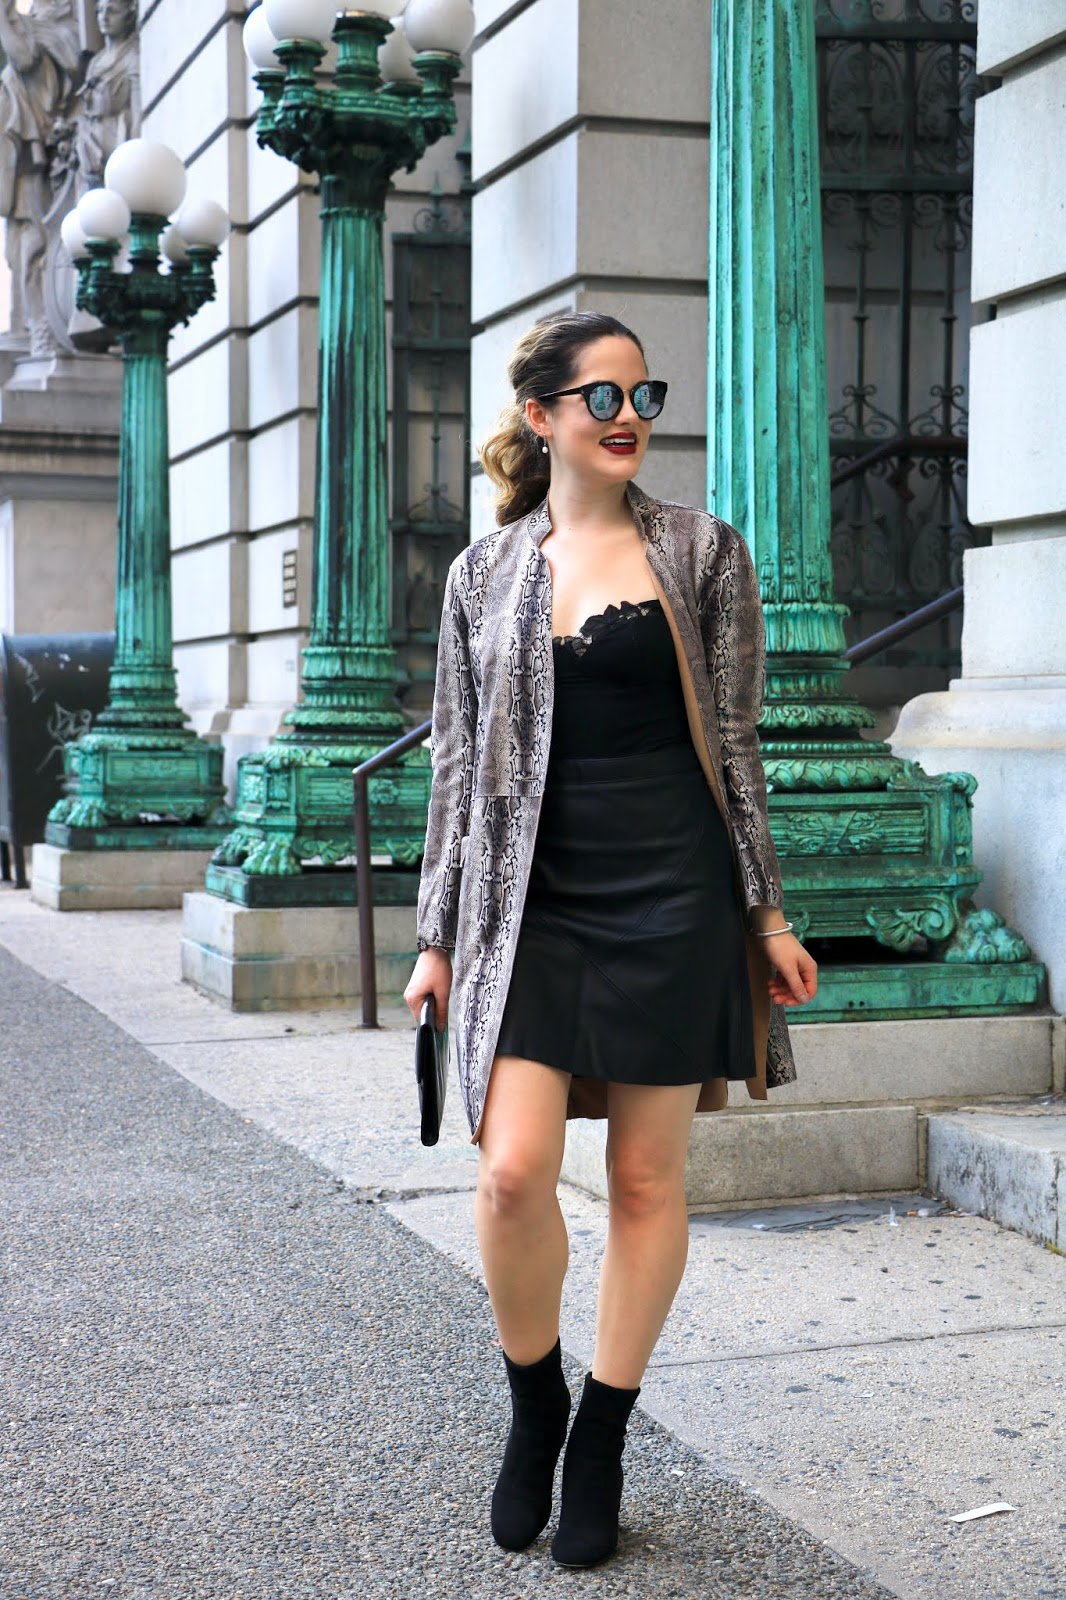 Nyc fashion blogger Kathleen Harper wearing a python print outfit.